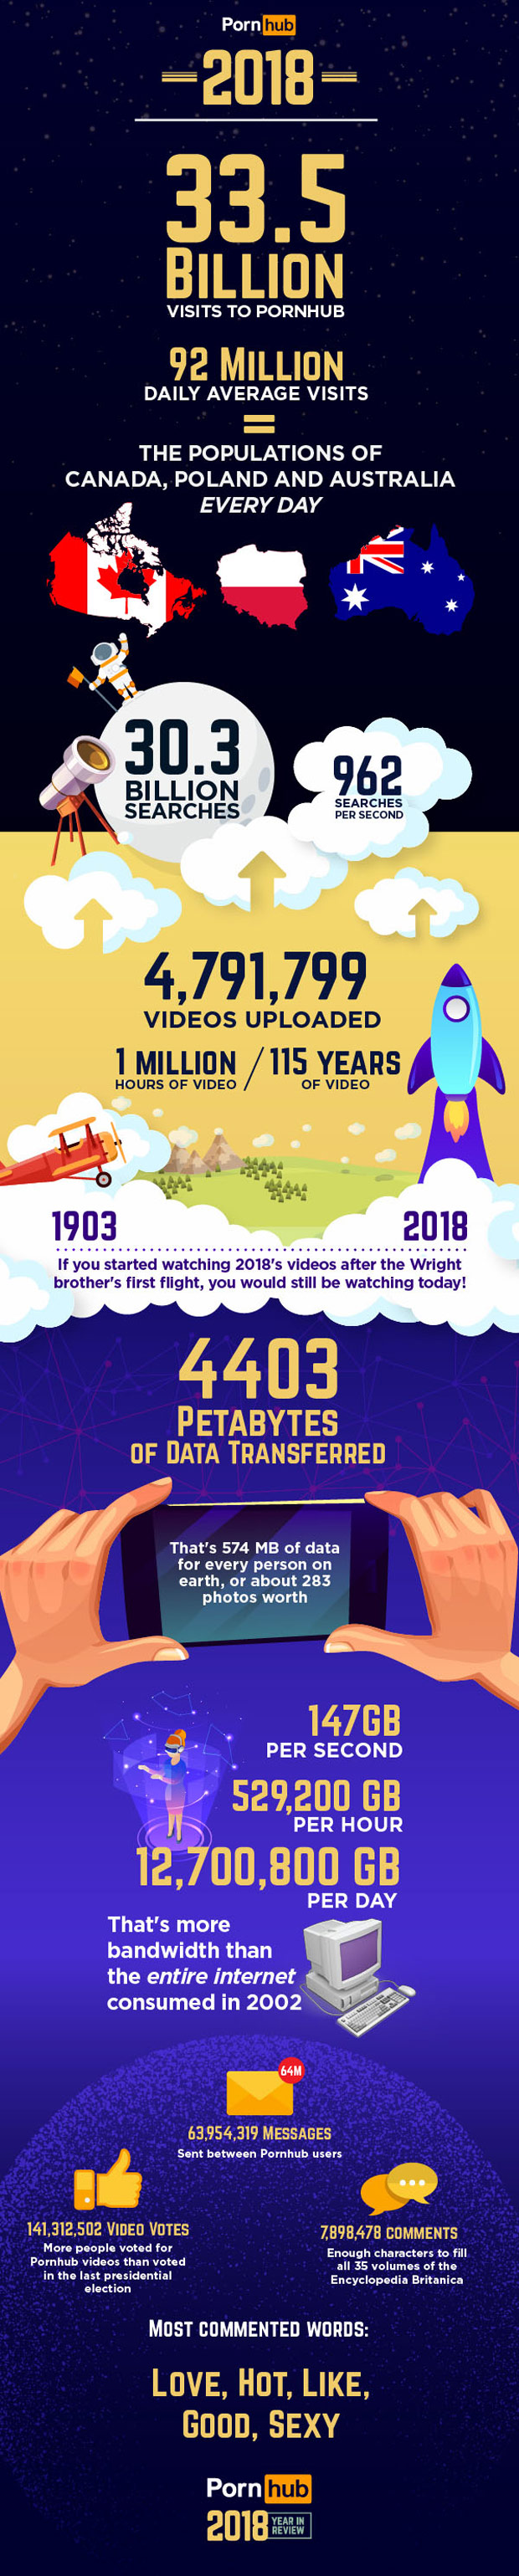 pornhub-insights-year-review-2018-big-numbers-infographic